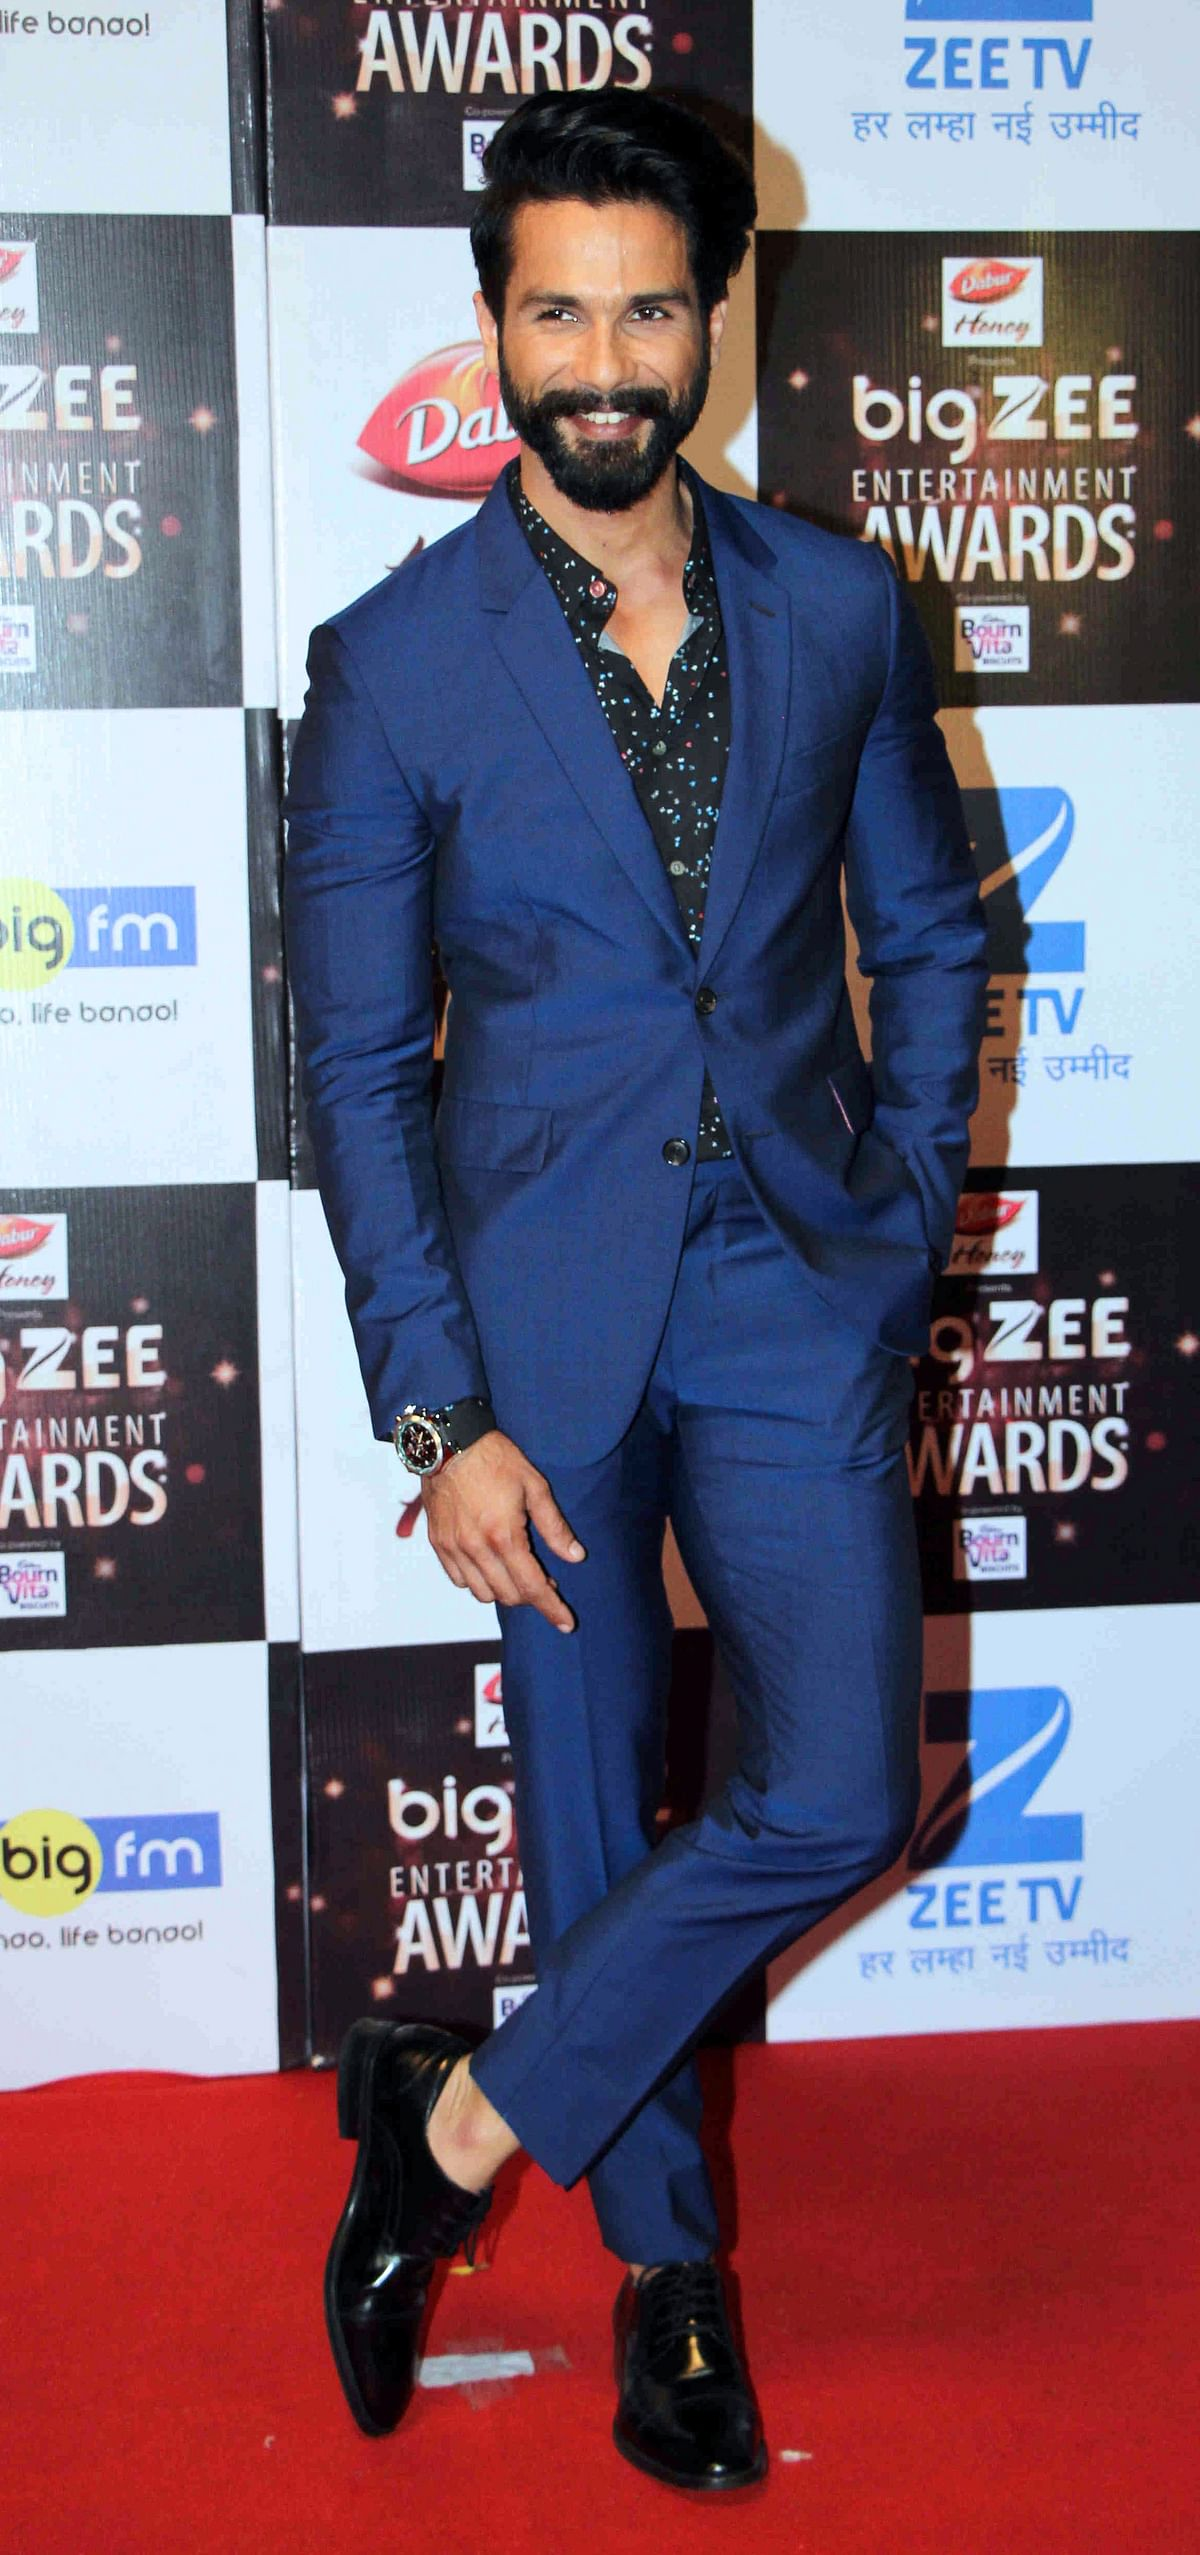 In this photograph taken on July 29, 2017, Indian Bollywood actor Shahid Kapoor attends the BIG ZEE Entertainment Awards 2017 ceremony in Mumbai. / AFP PHOTO / STR